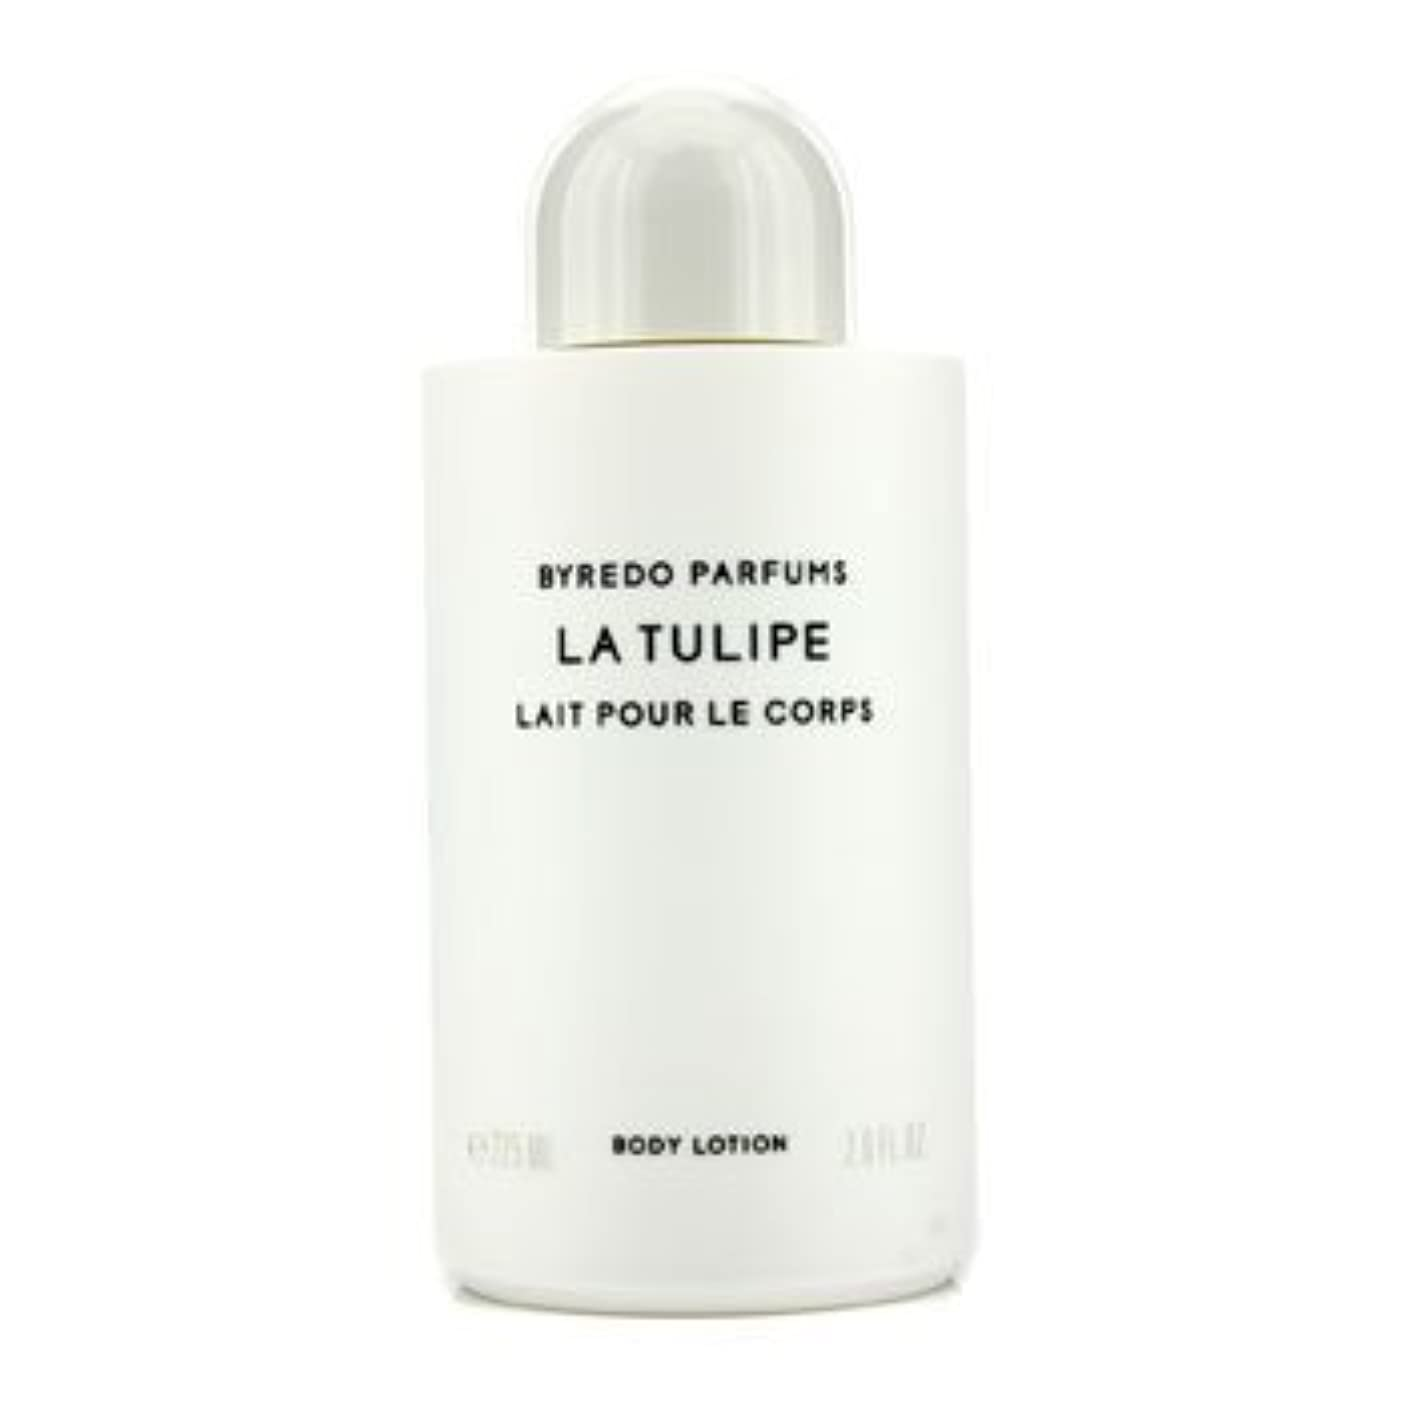 Byredo La Tulipe Body Lotion For Women 225Ml/7.6Oz by Byredo [並行輸入品]